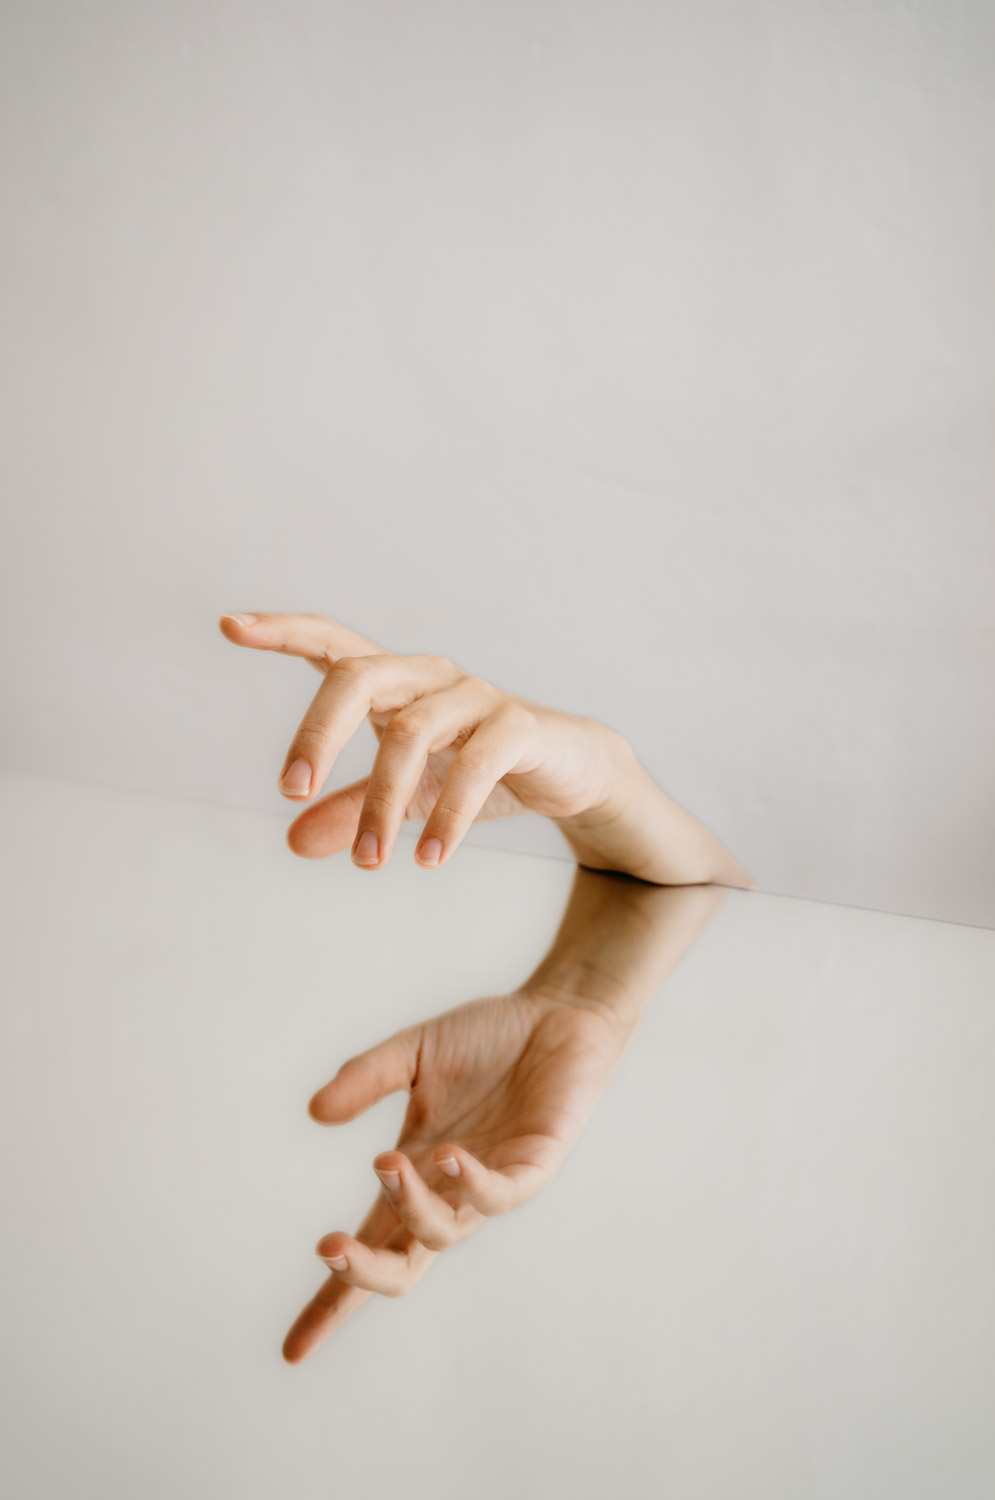 Delphine Millet Fagments - Body mirror hand help vulnerable dance human condition lonely photography minimalist graphic delicate - Art conceptual photographer in Berlin